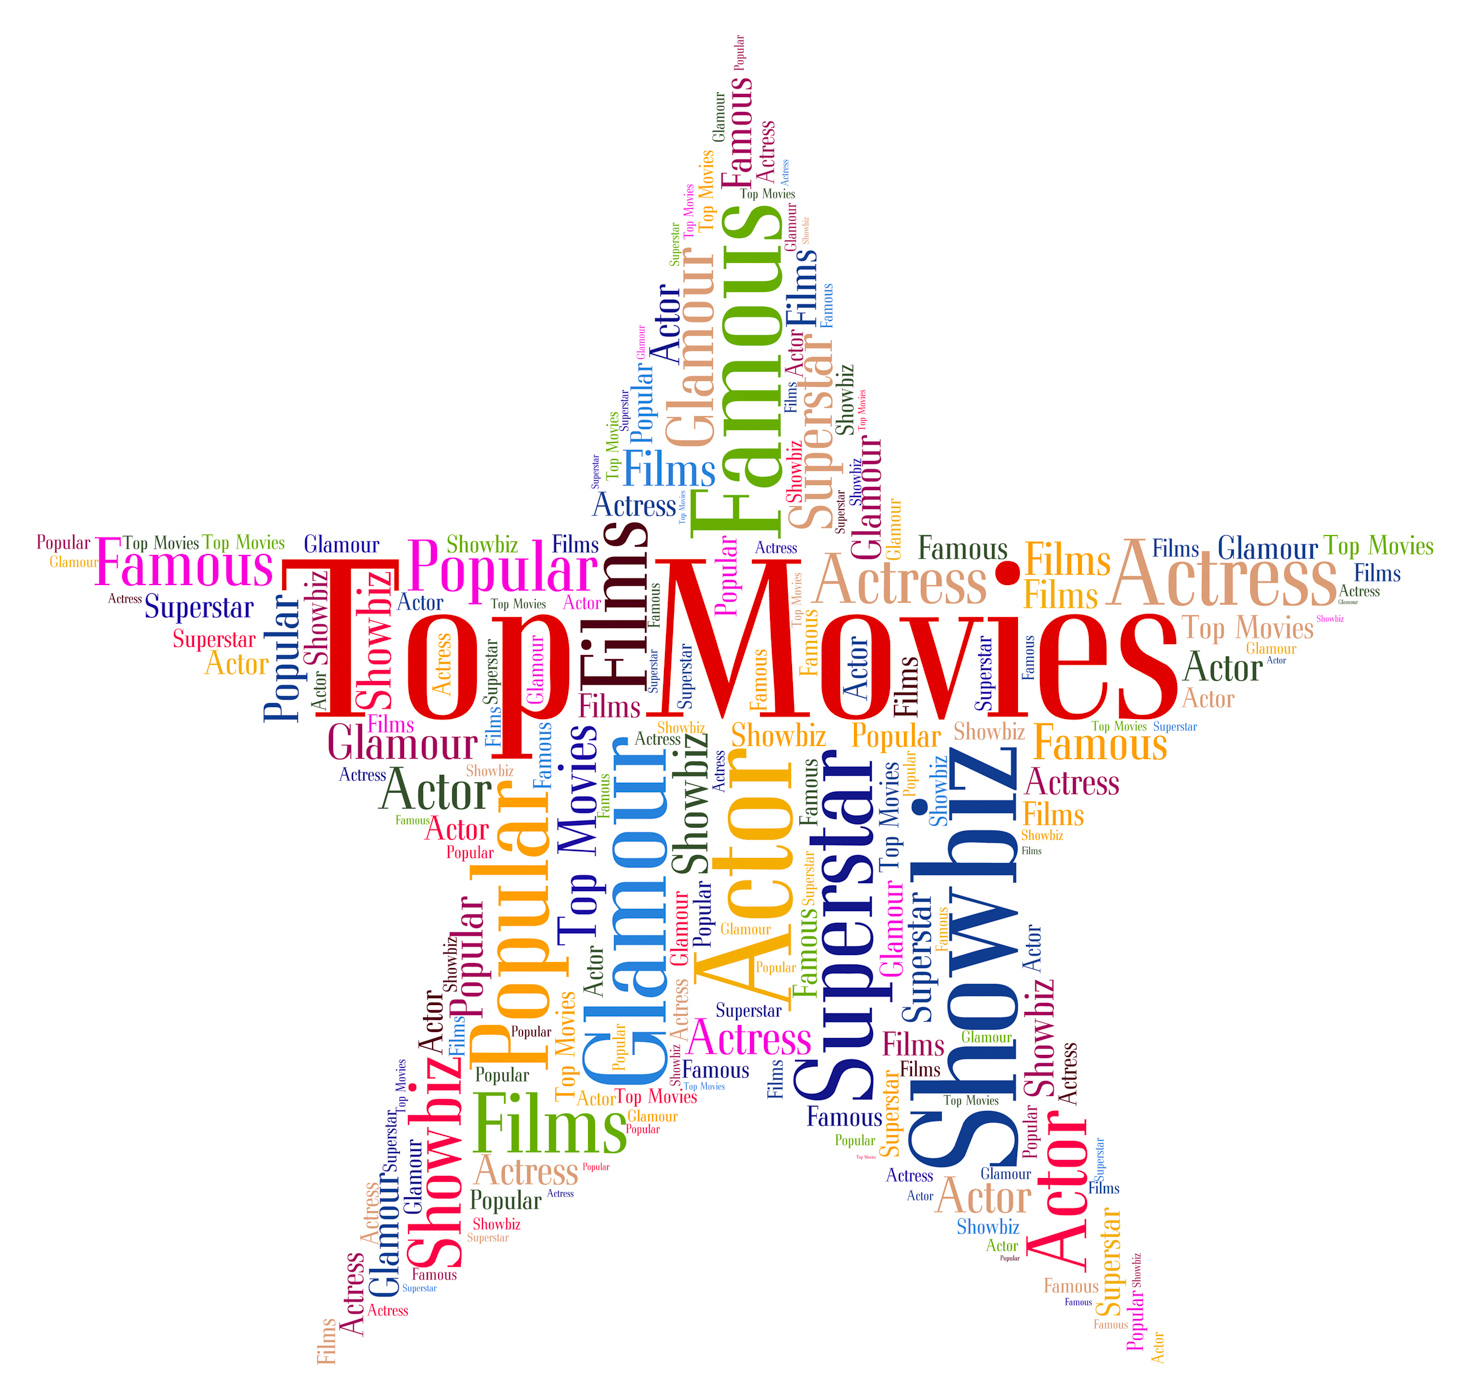 Top rated shows hollywood movies and entertainment photo